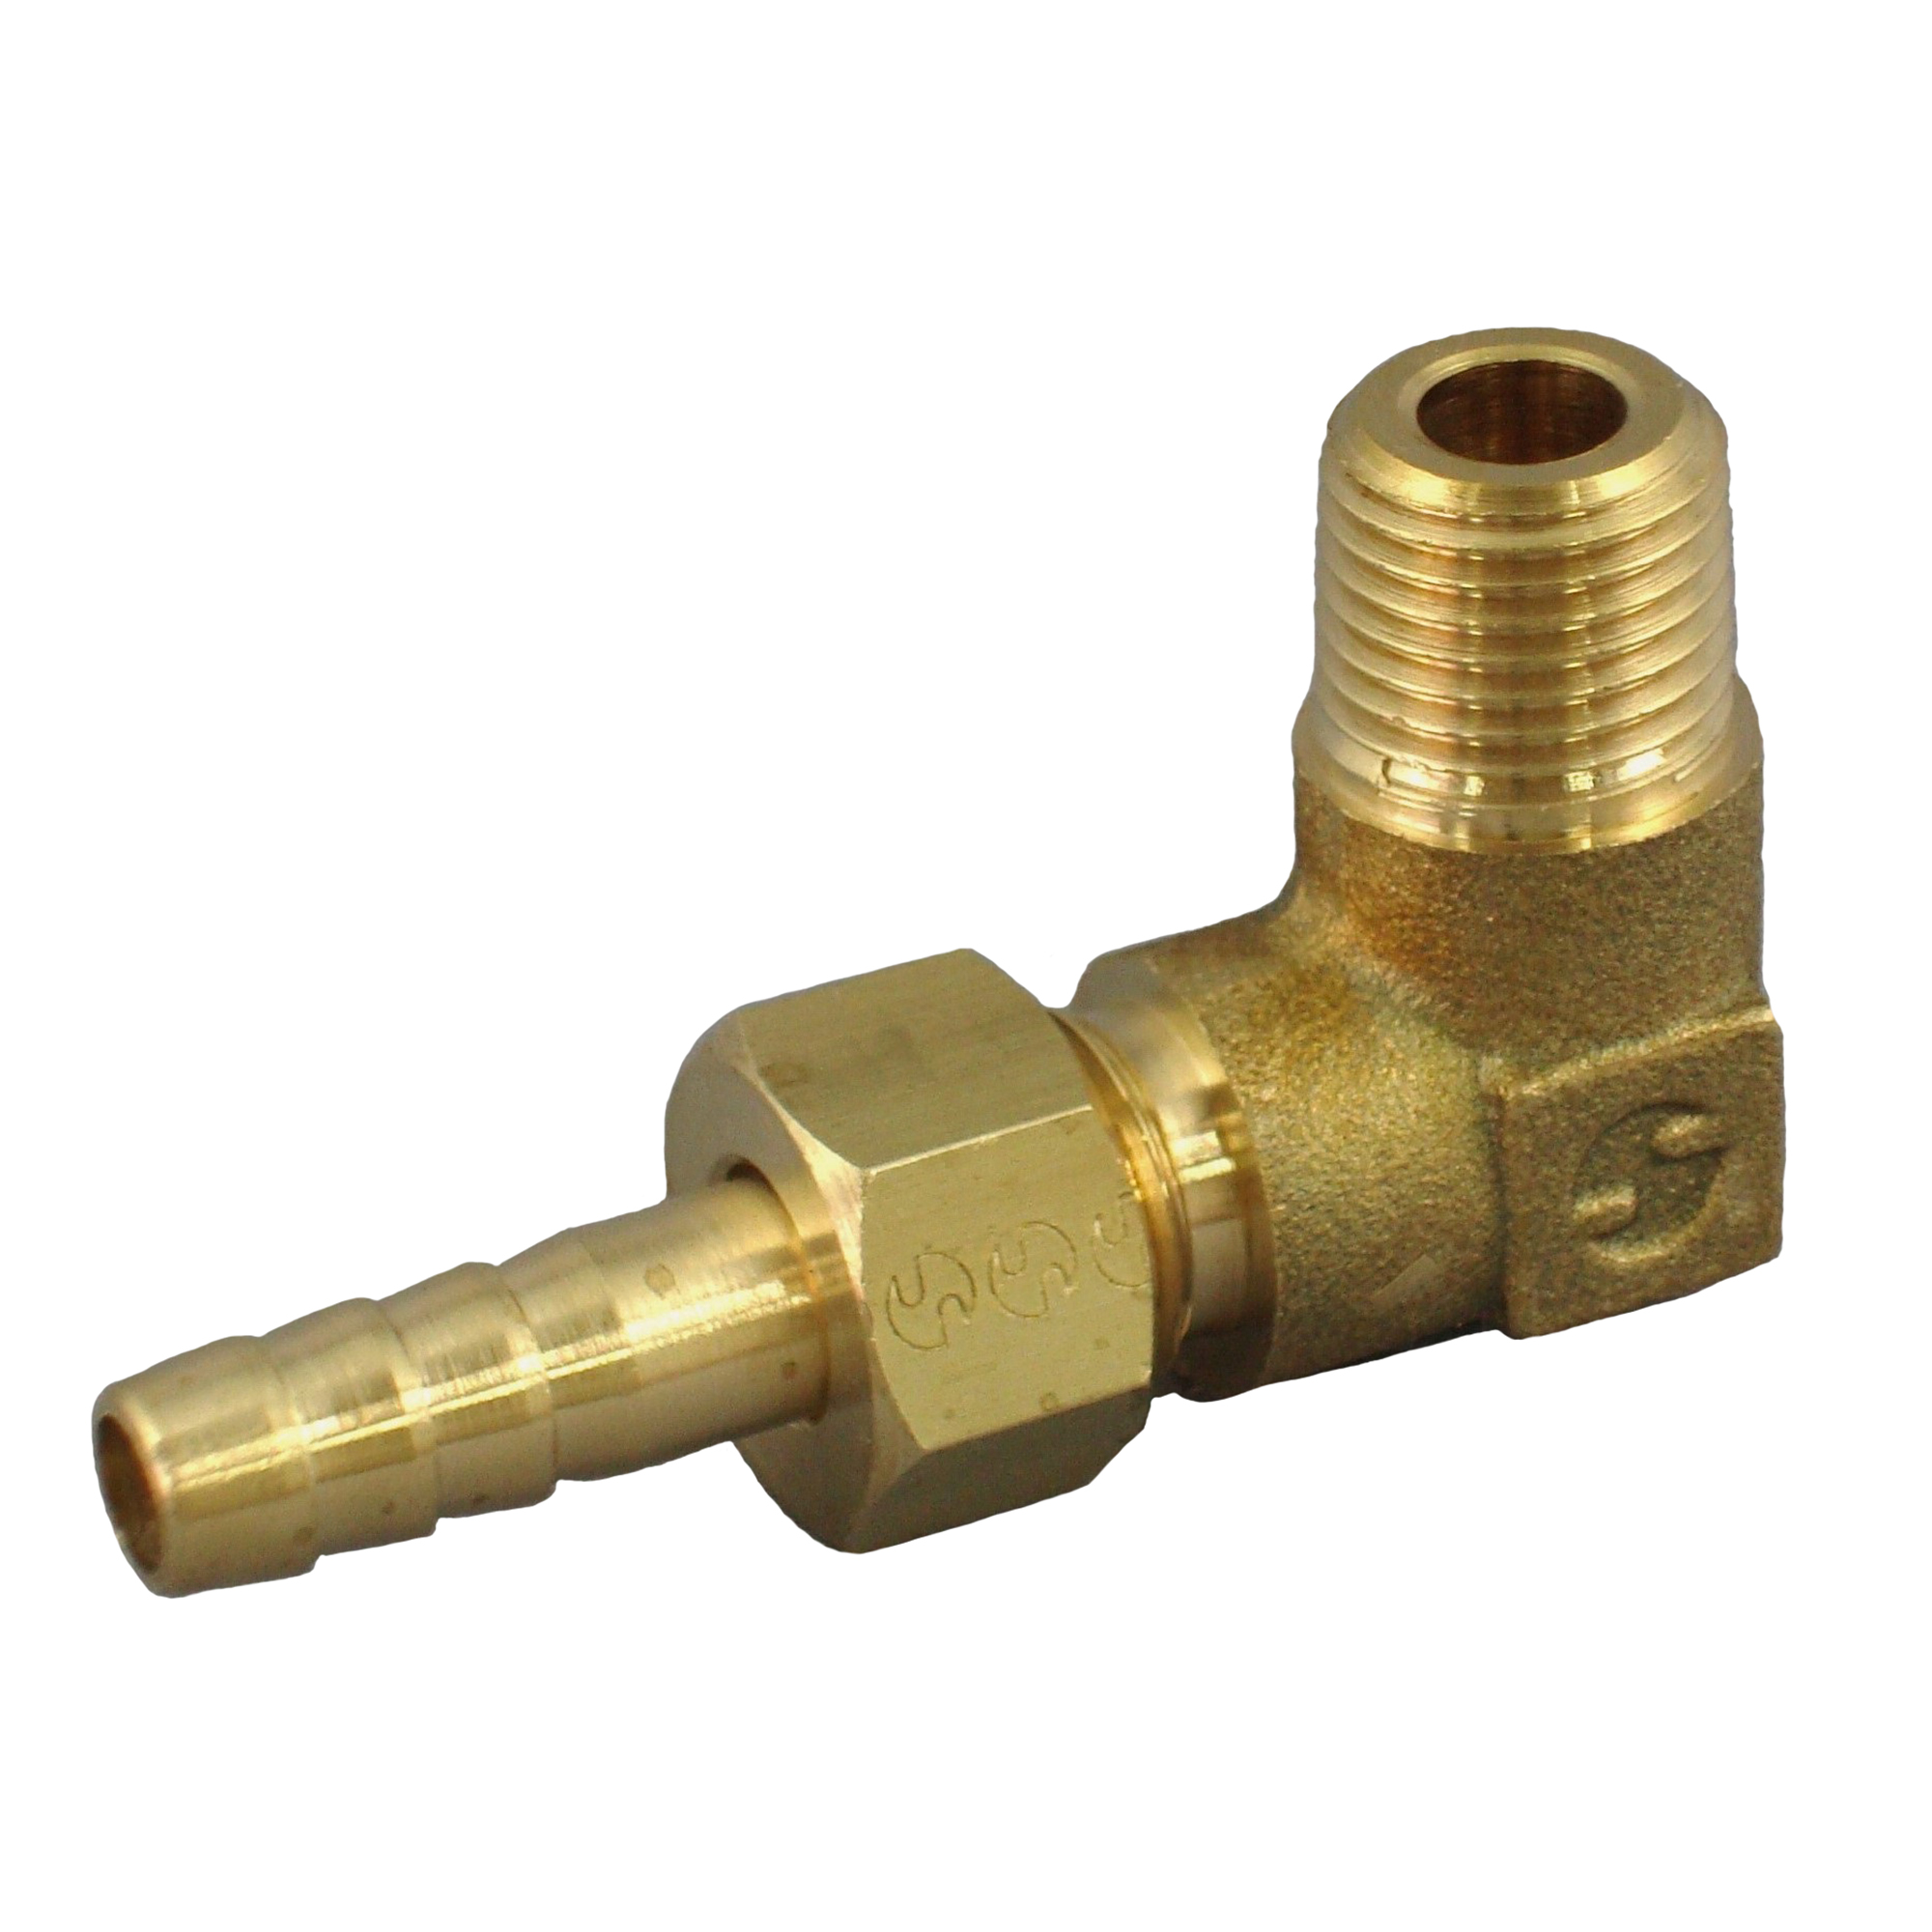 Hose Fitting, Hose Male Thread Elbow